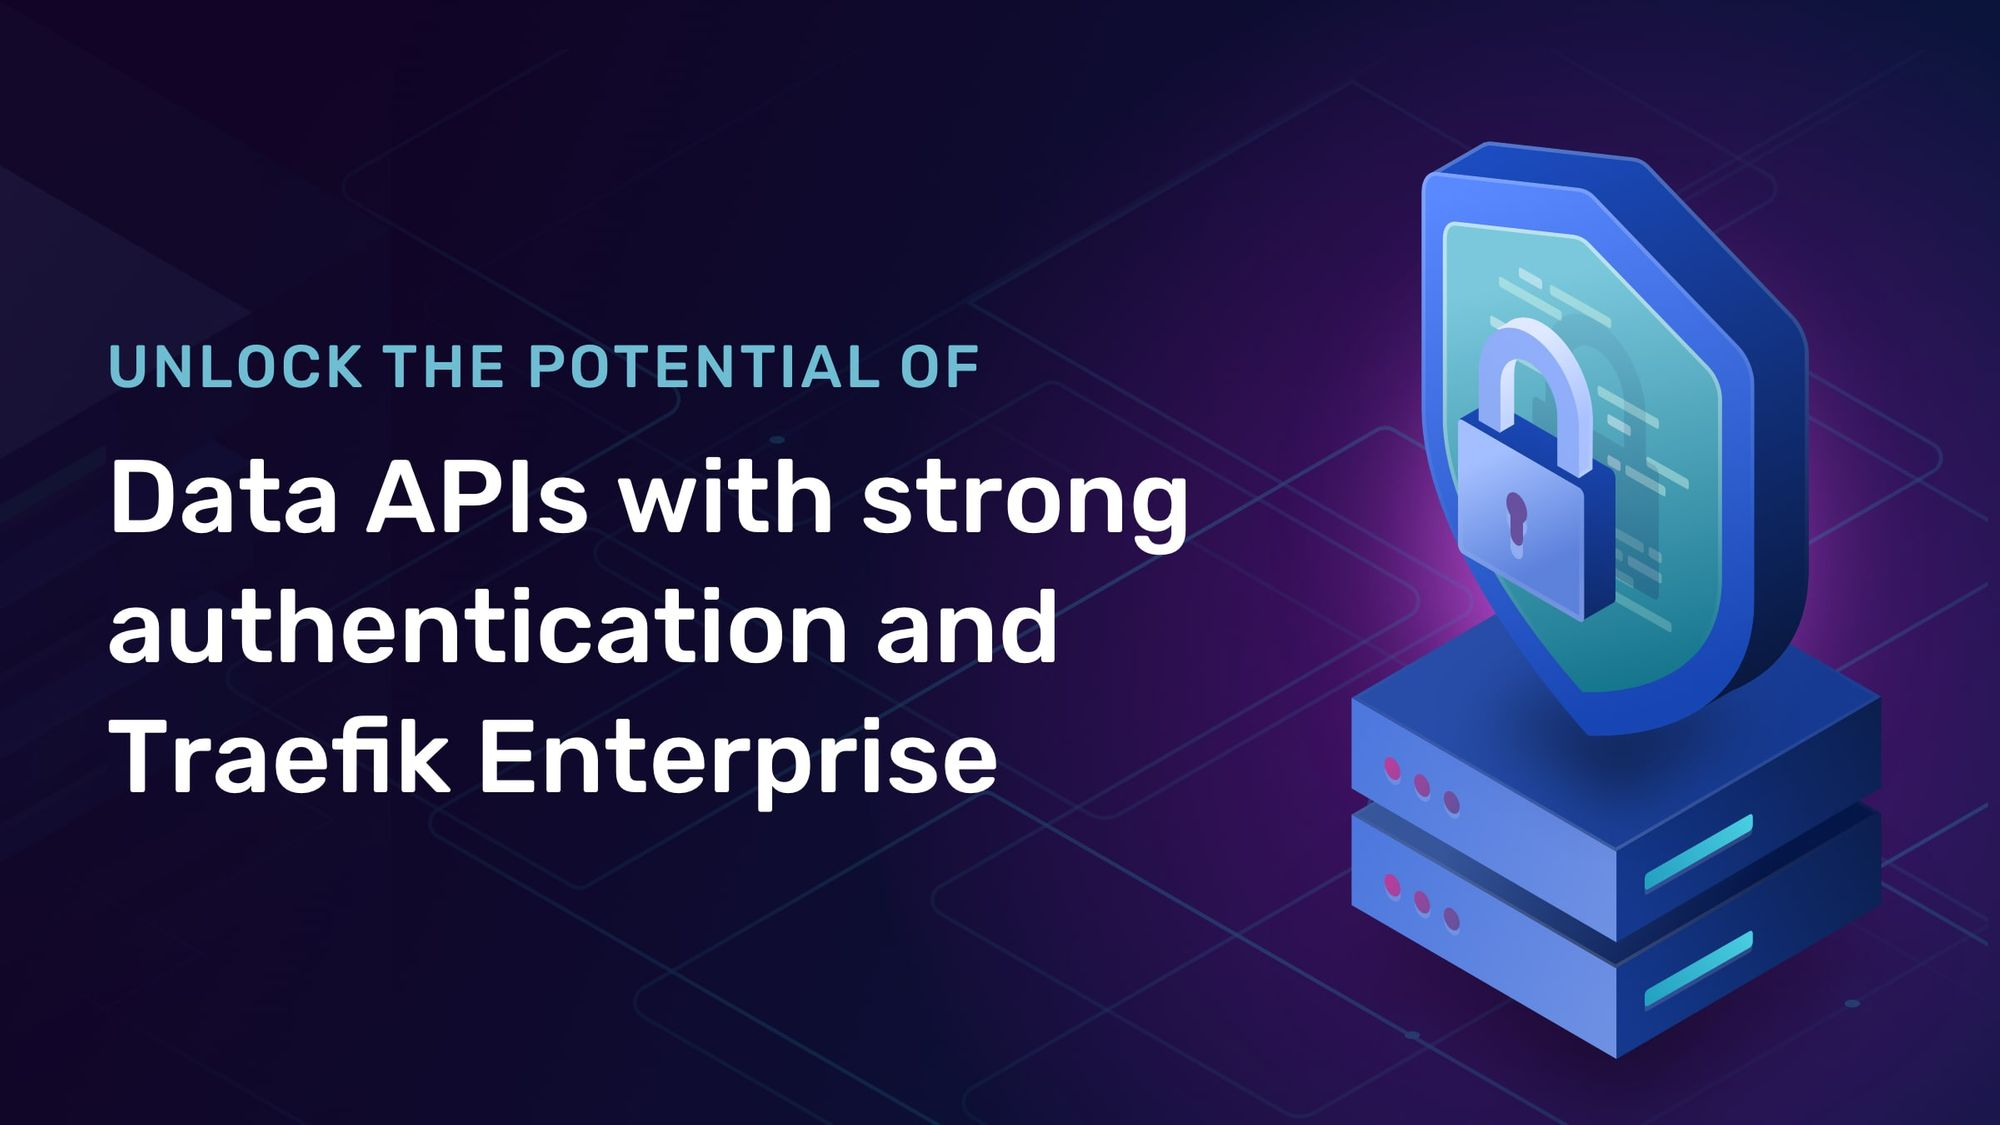 Unlock the potential of data APIs with strong authentication and Traefik